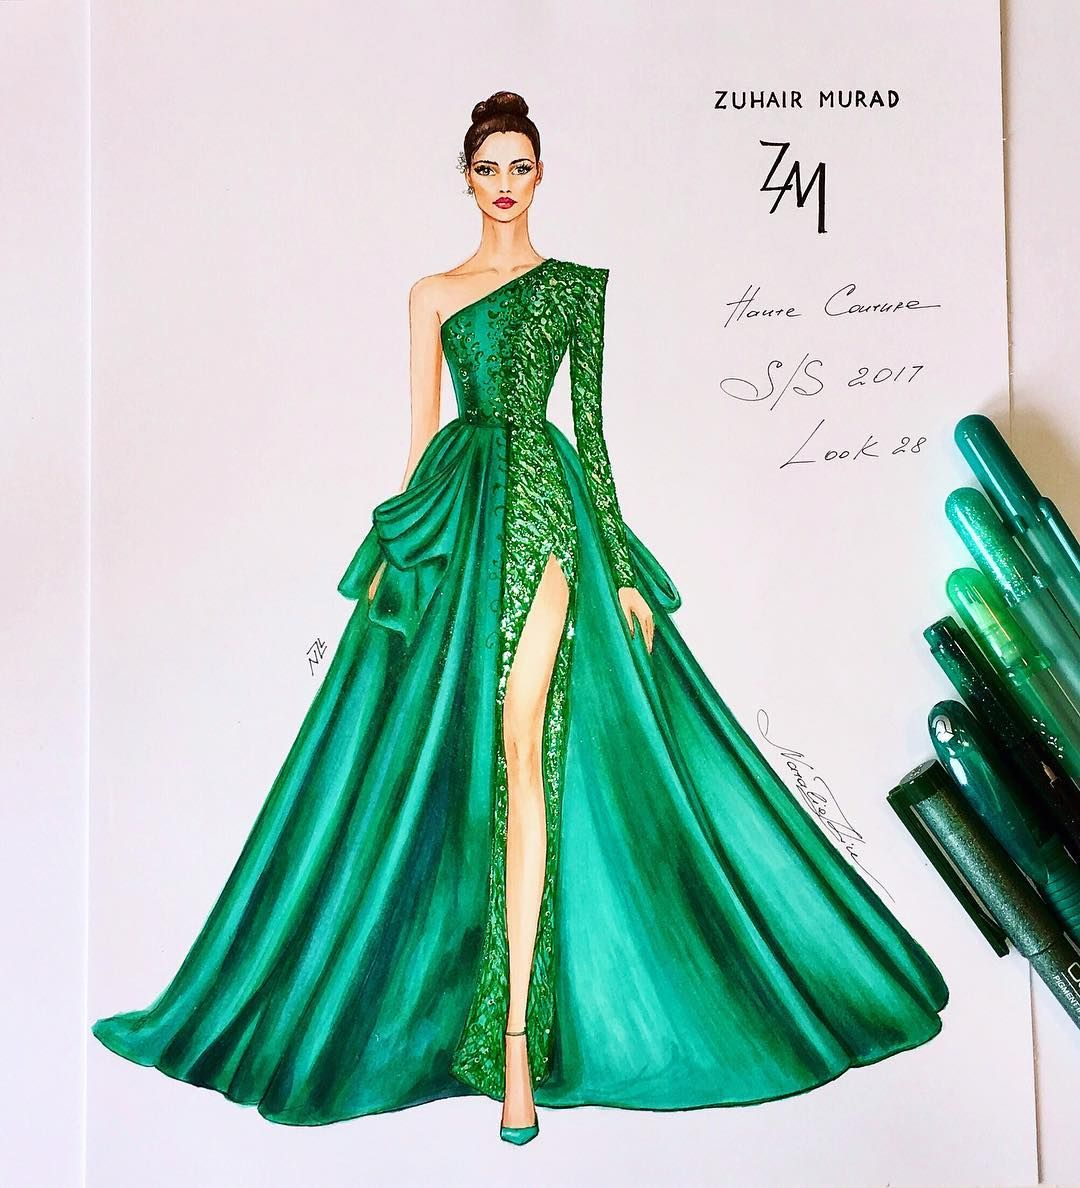 Couture Clothing Of Magnificent Couture Gown Of The Zuhair Murad Spring Summer